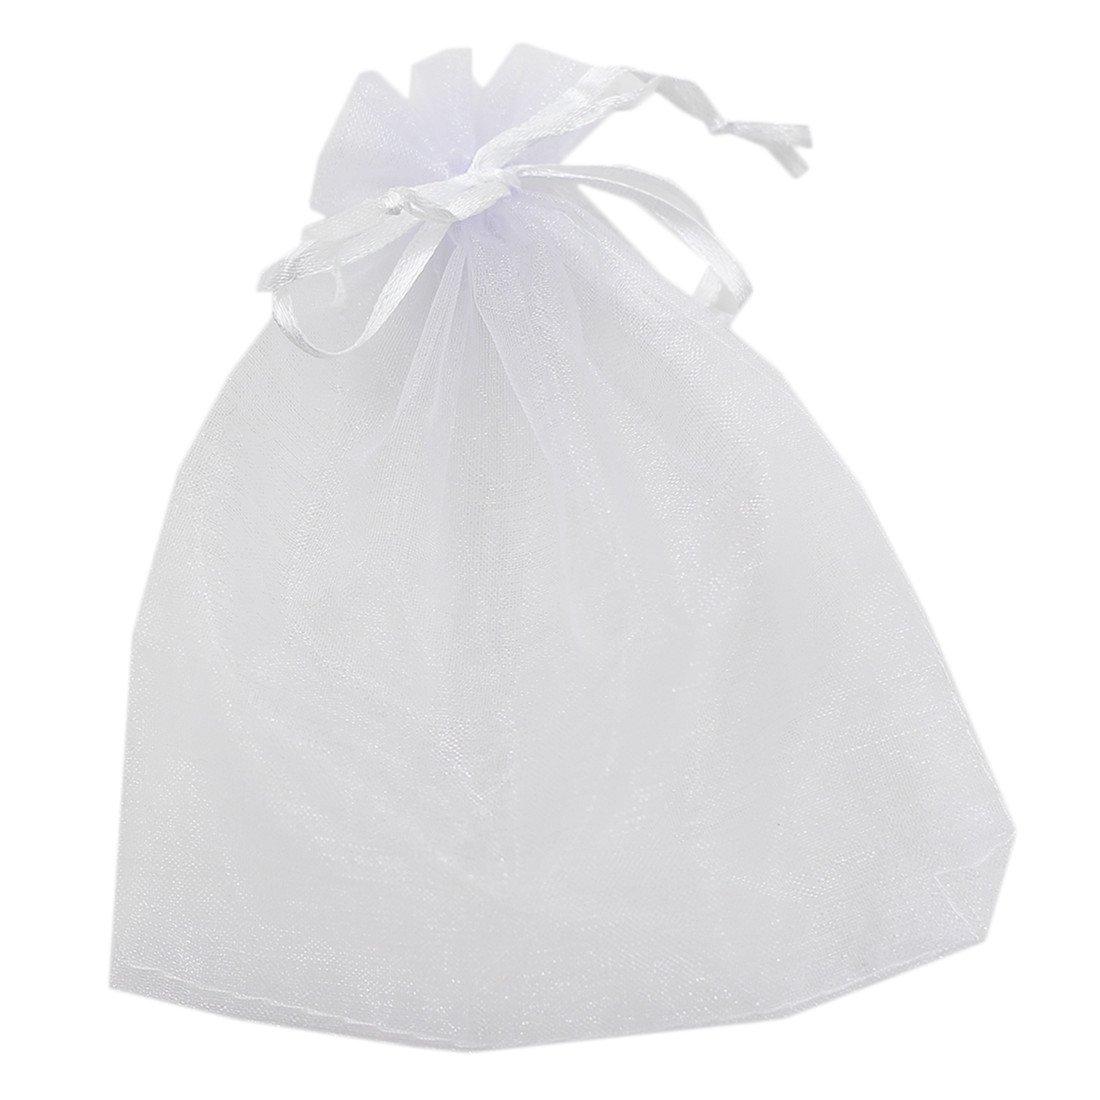 Generic Drawstring Organza Wedding Candy Packing Gift Bag Jewellery Pouch Pouches 50pcs(White) (5X7cm) HMGTUK